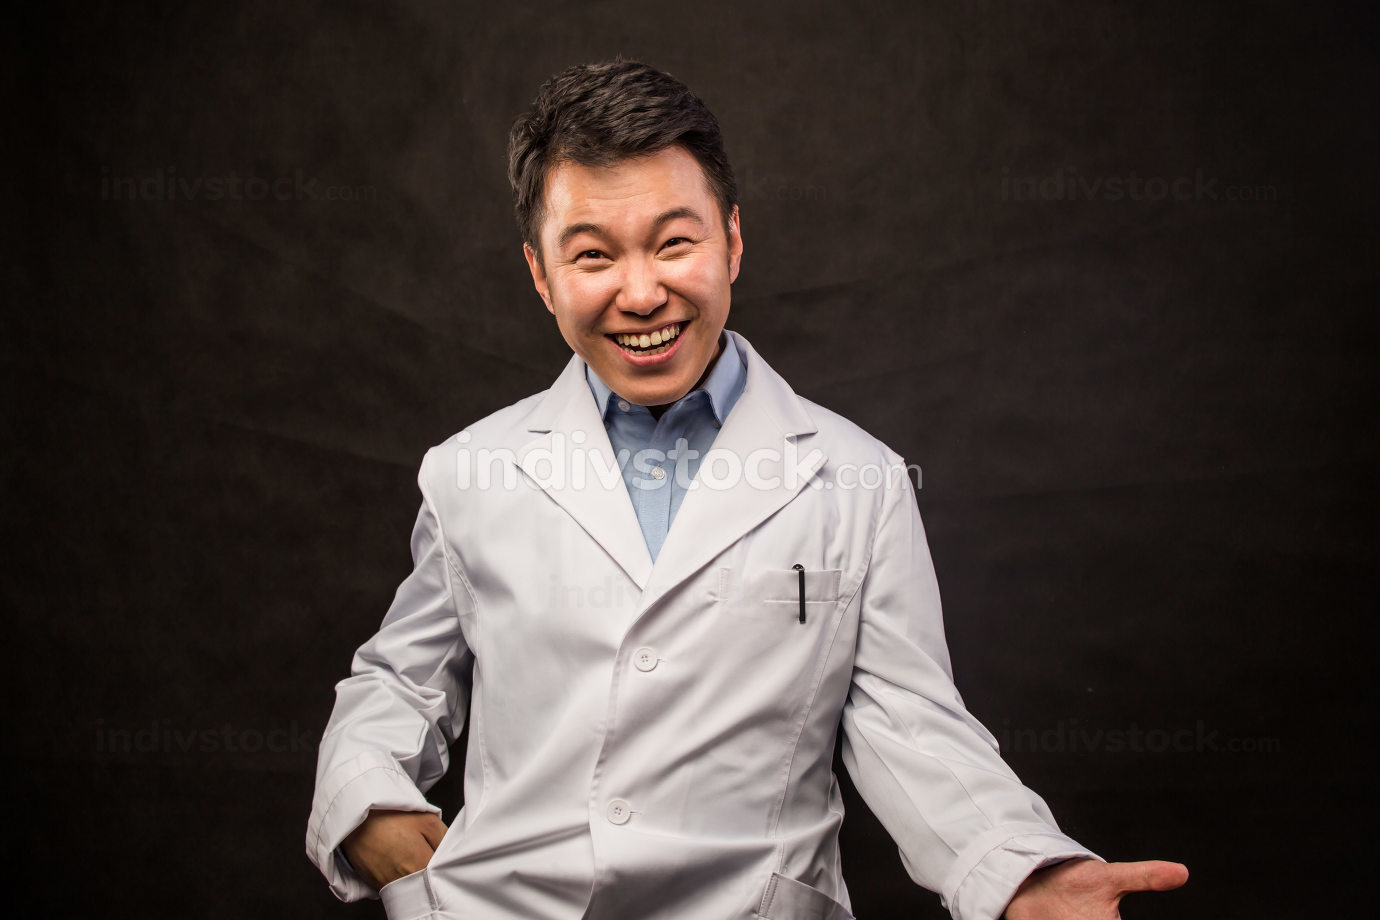 Asian doctor. Mature Chinese male medical doctor standing isolated on white background. Handsome Asian model portrait.